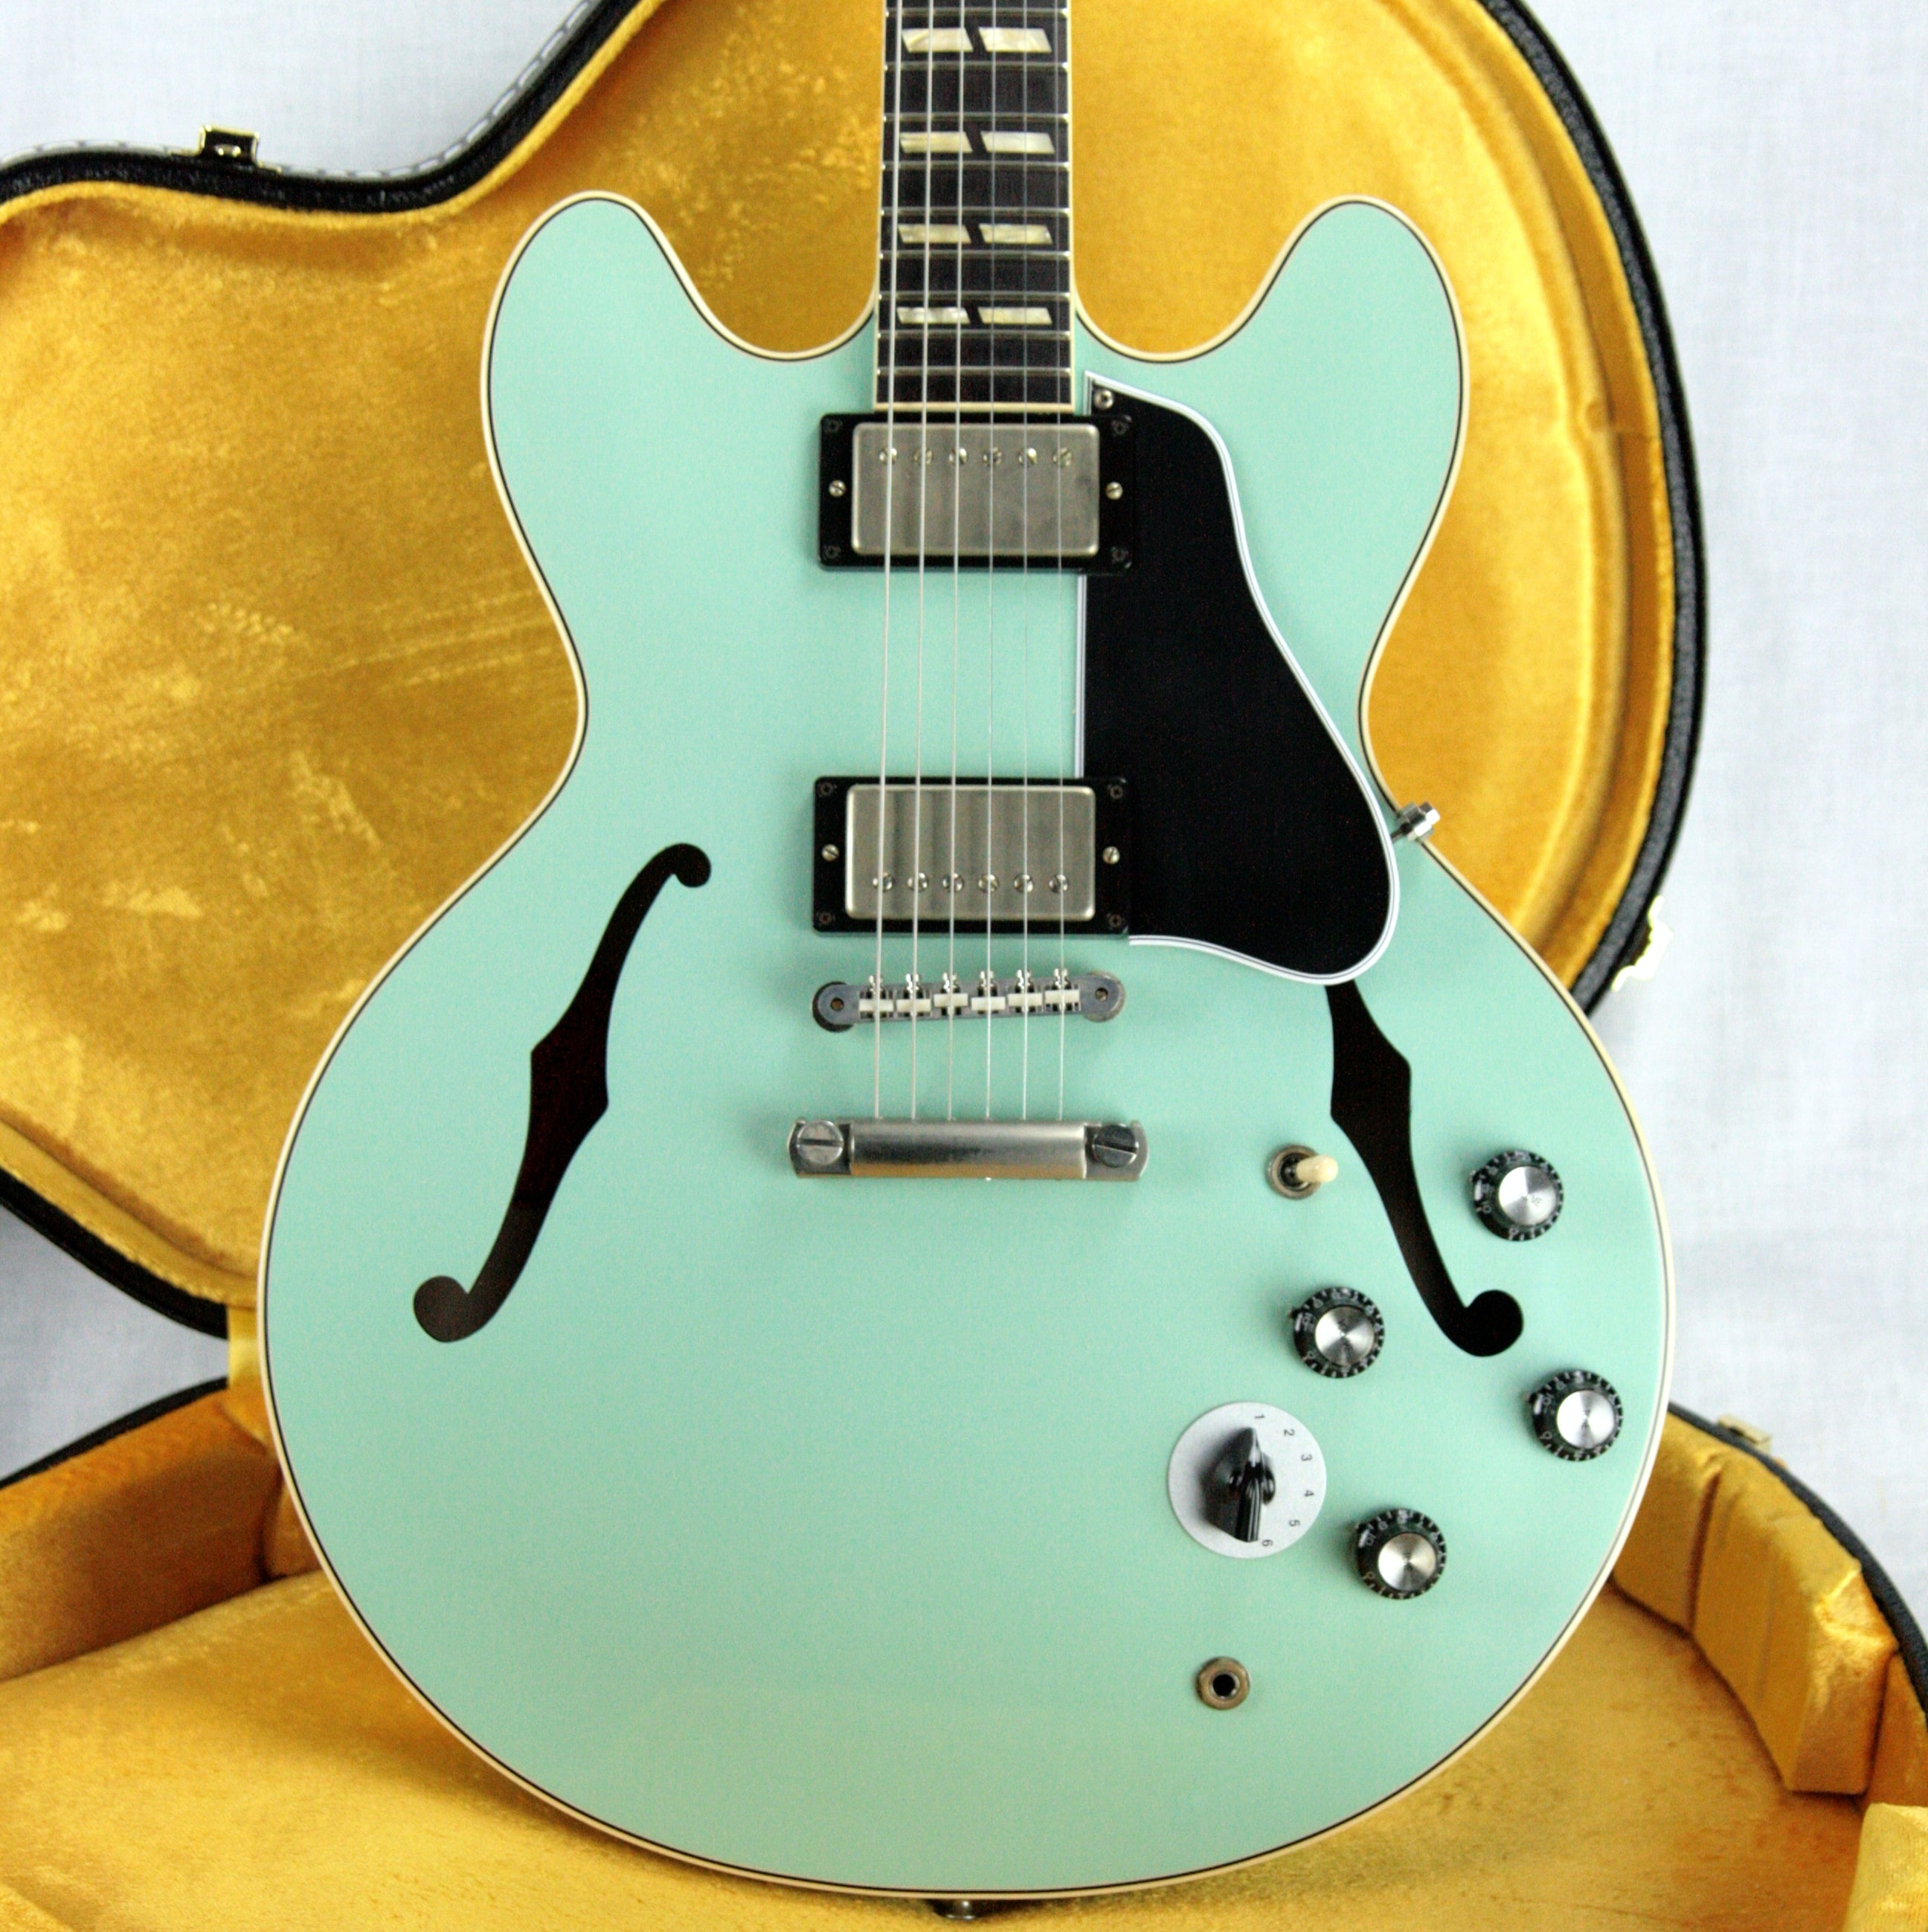 1964 Gibson ES-345 Sea Foam Green VOS! 2017 Memphis Reissue LTD 50 Made! 335 355